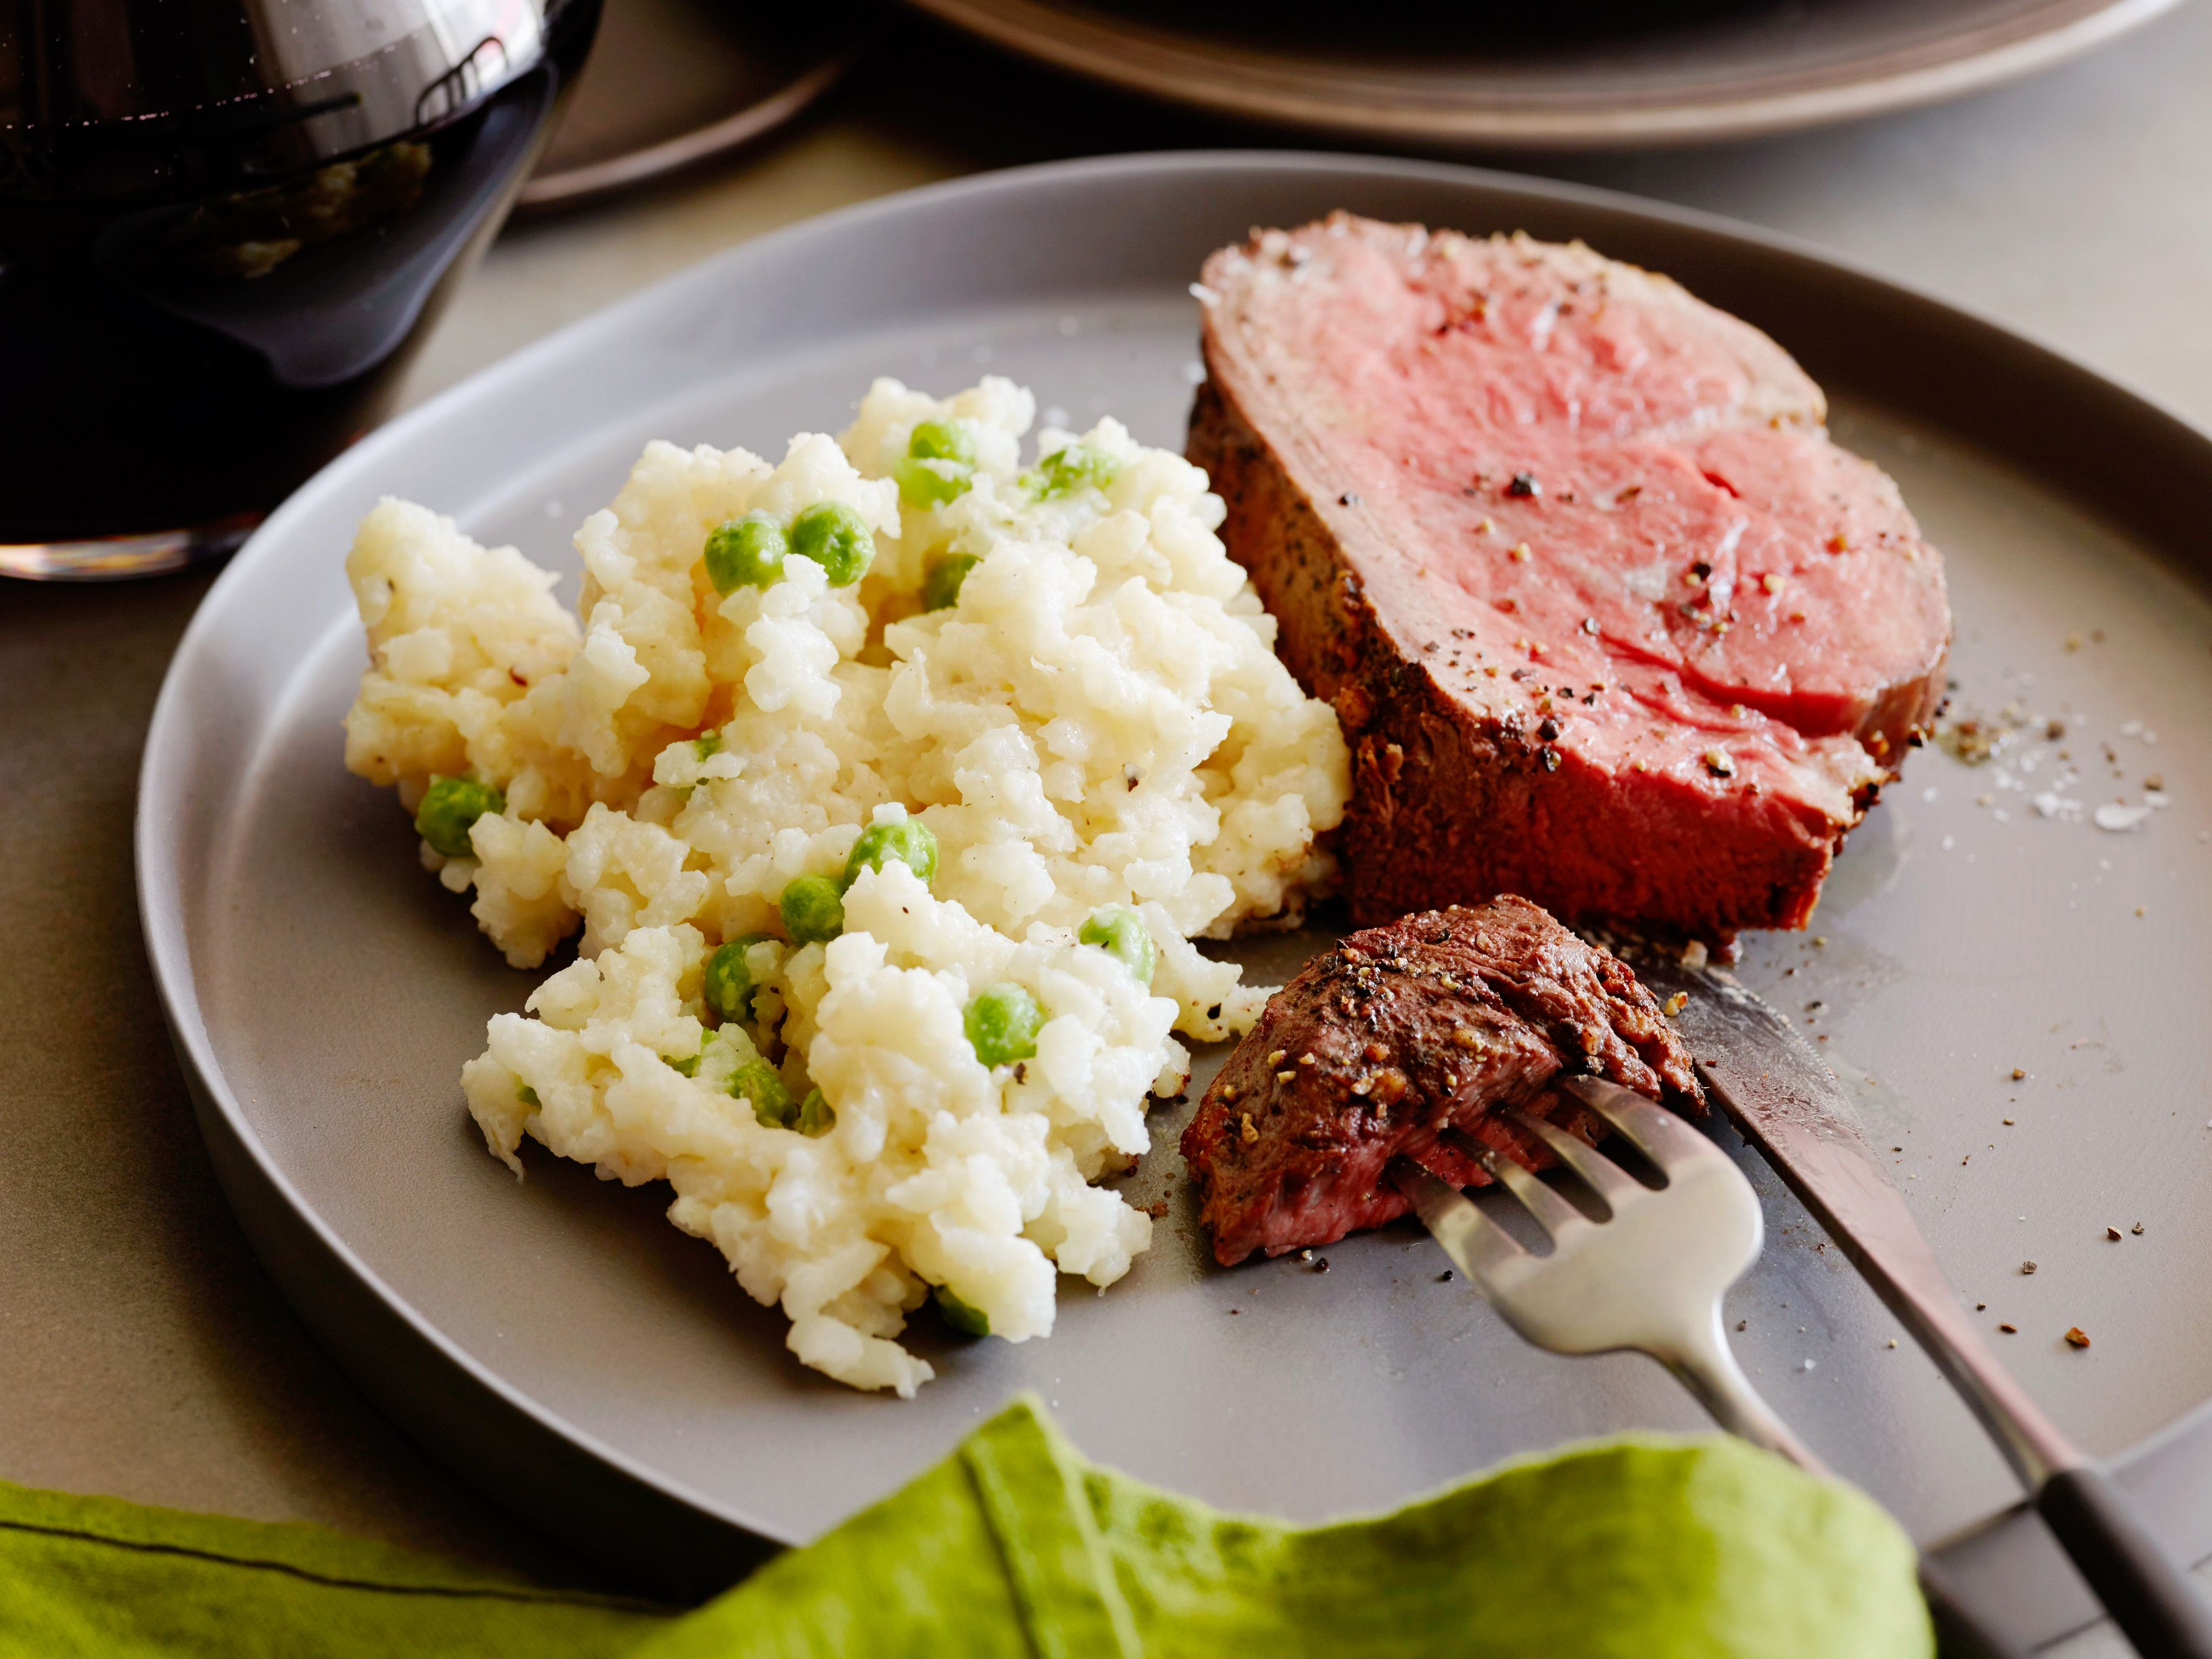 Filet Of Beef Recipe Beef Filet Food Network Recipes Beef Recipes